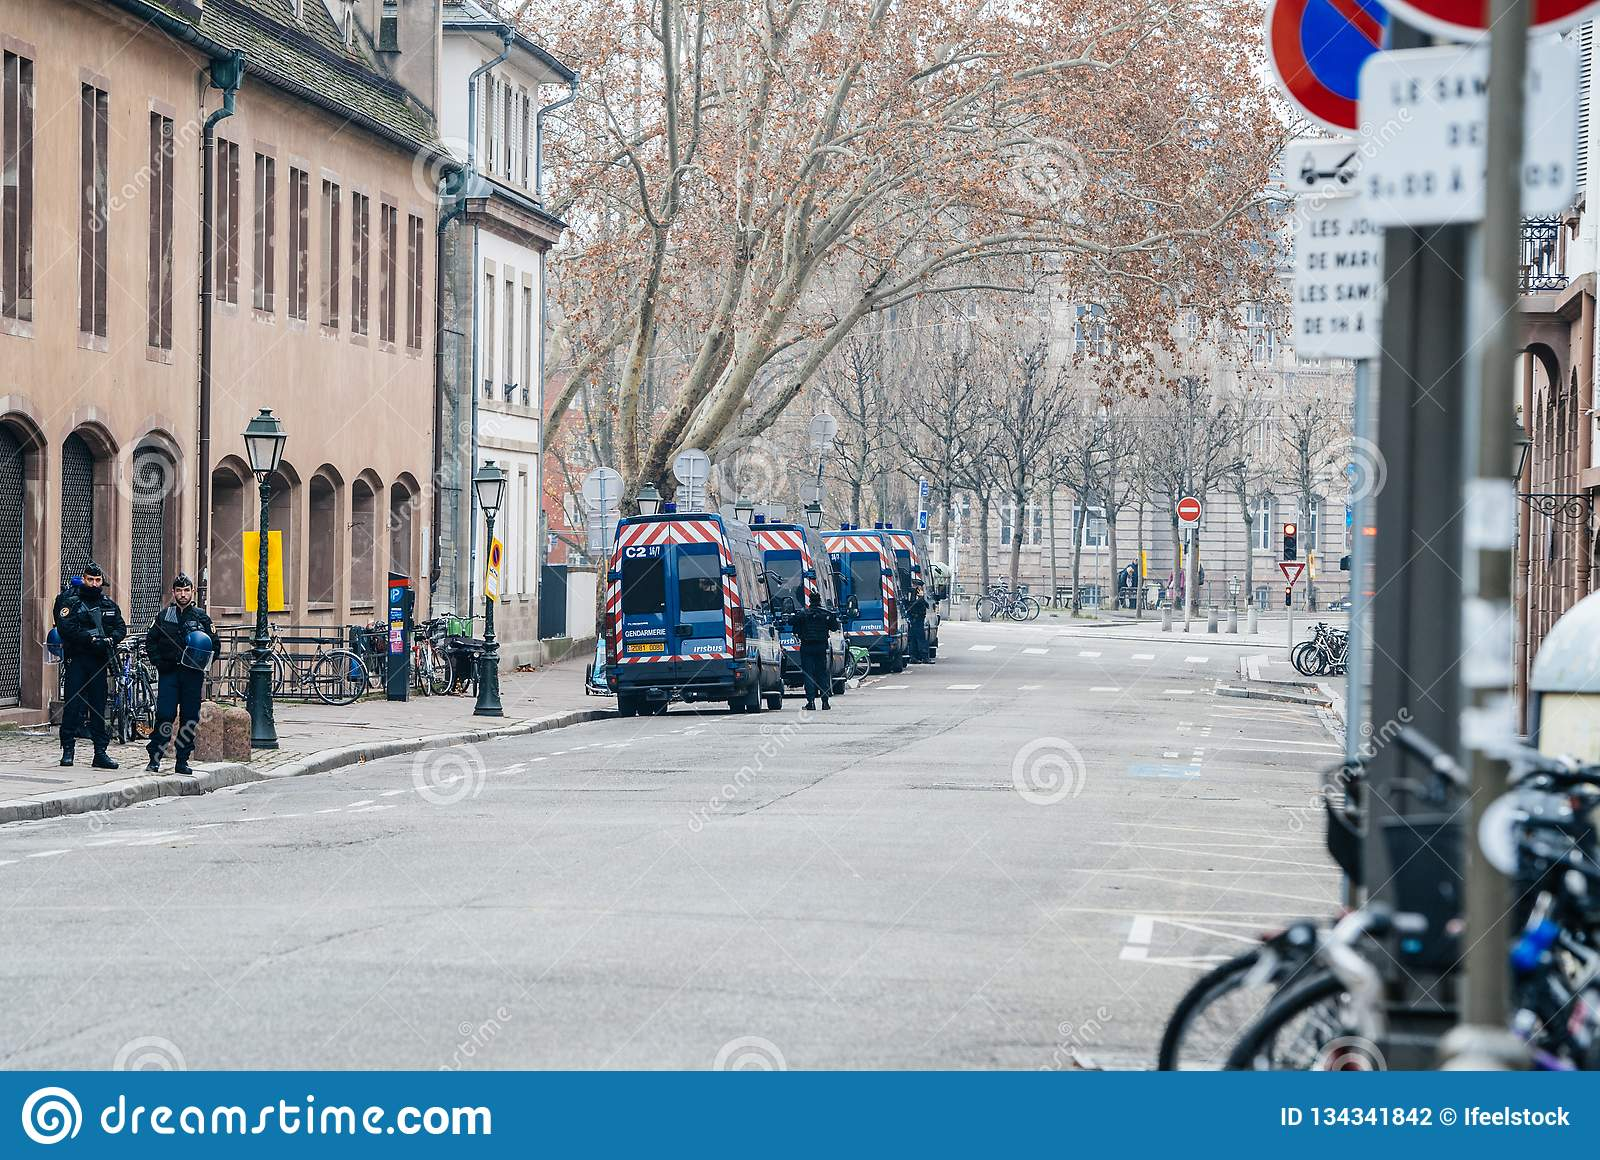 Closed street with police vans and police officer in Strasbourg